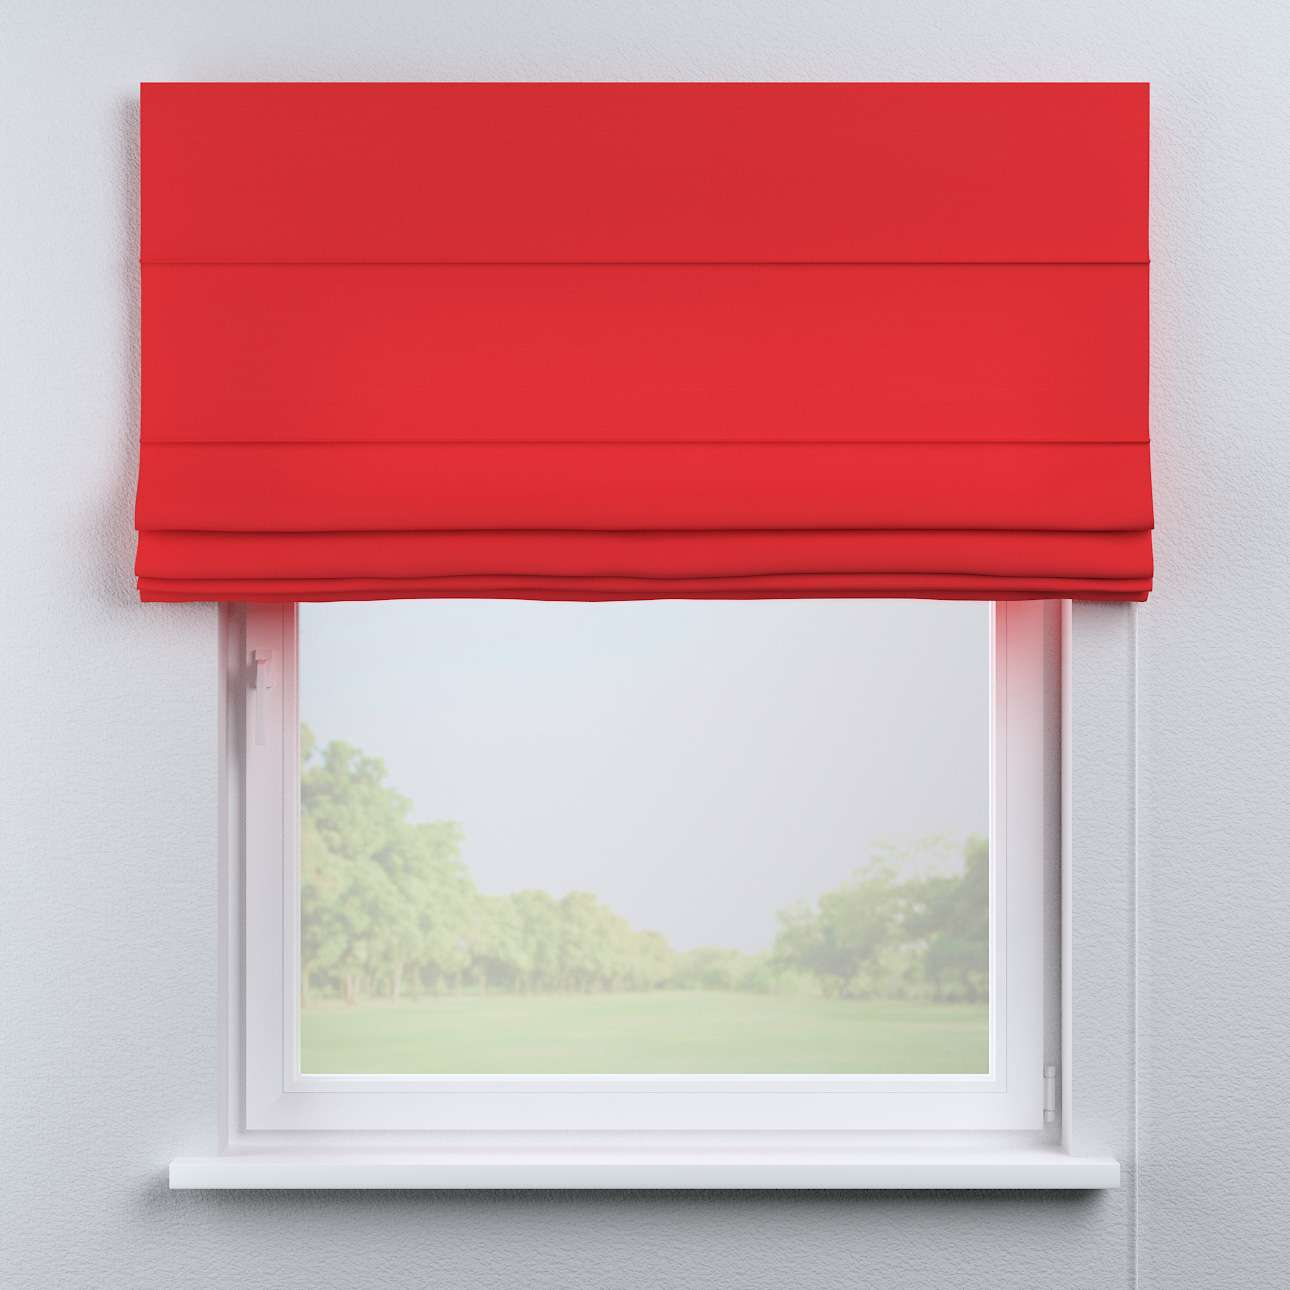 Capri roman blind 80 x 170 cm (31.5 x 67 inch) in collection Loneta , fabric: 133-43